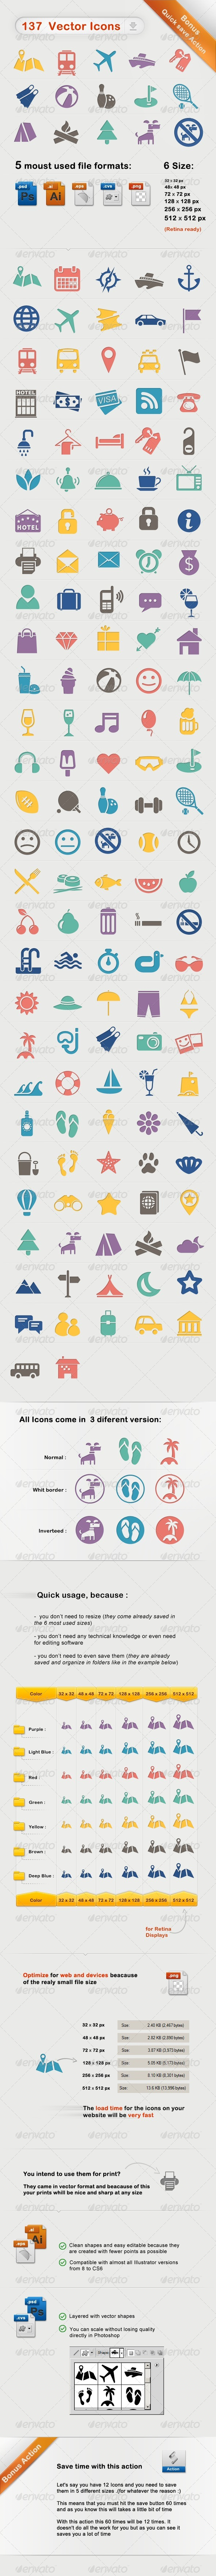 GraphicRiver Vacation Travel Hotel Icons Optimize For Web Print 5334792